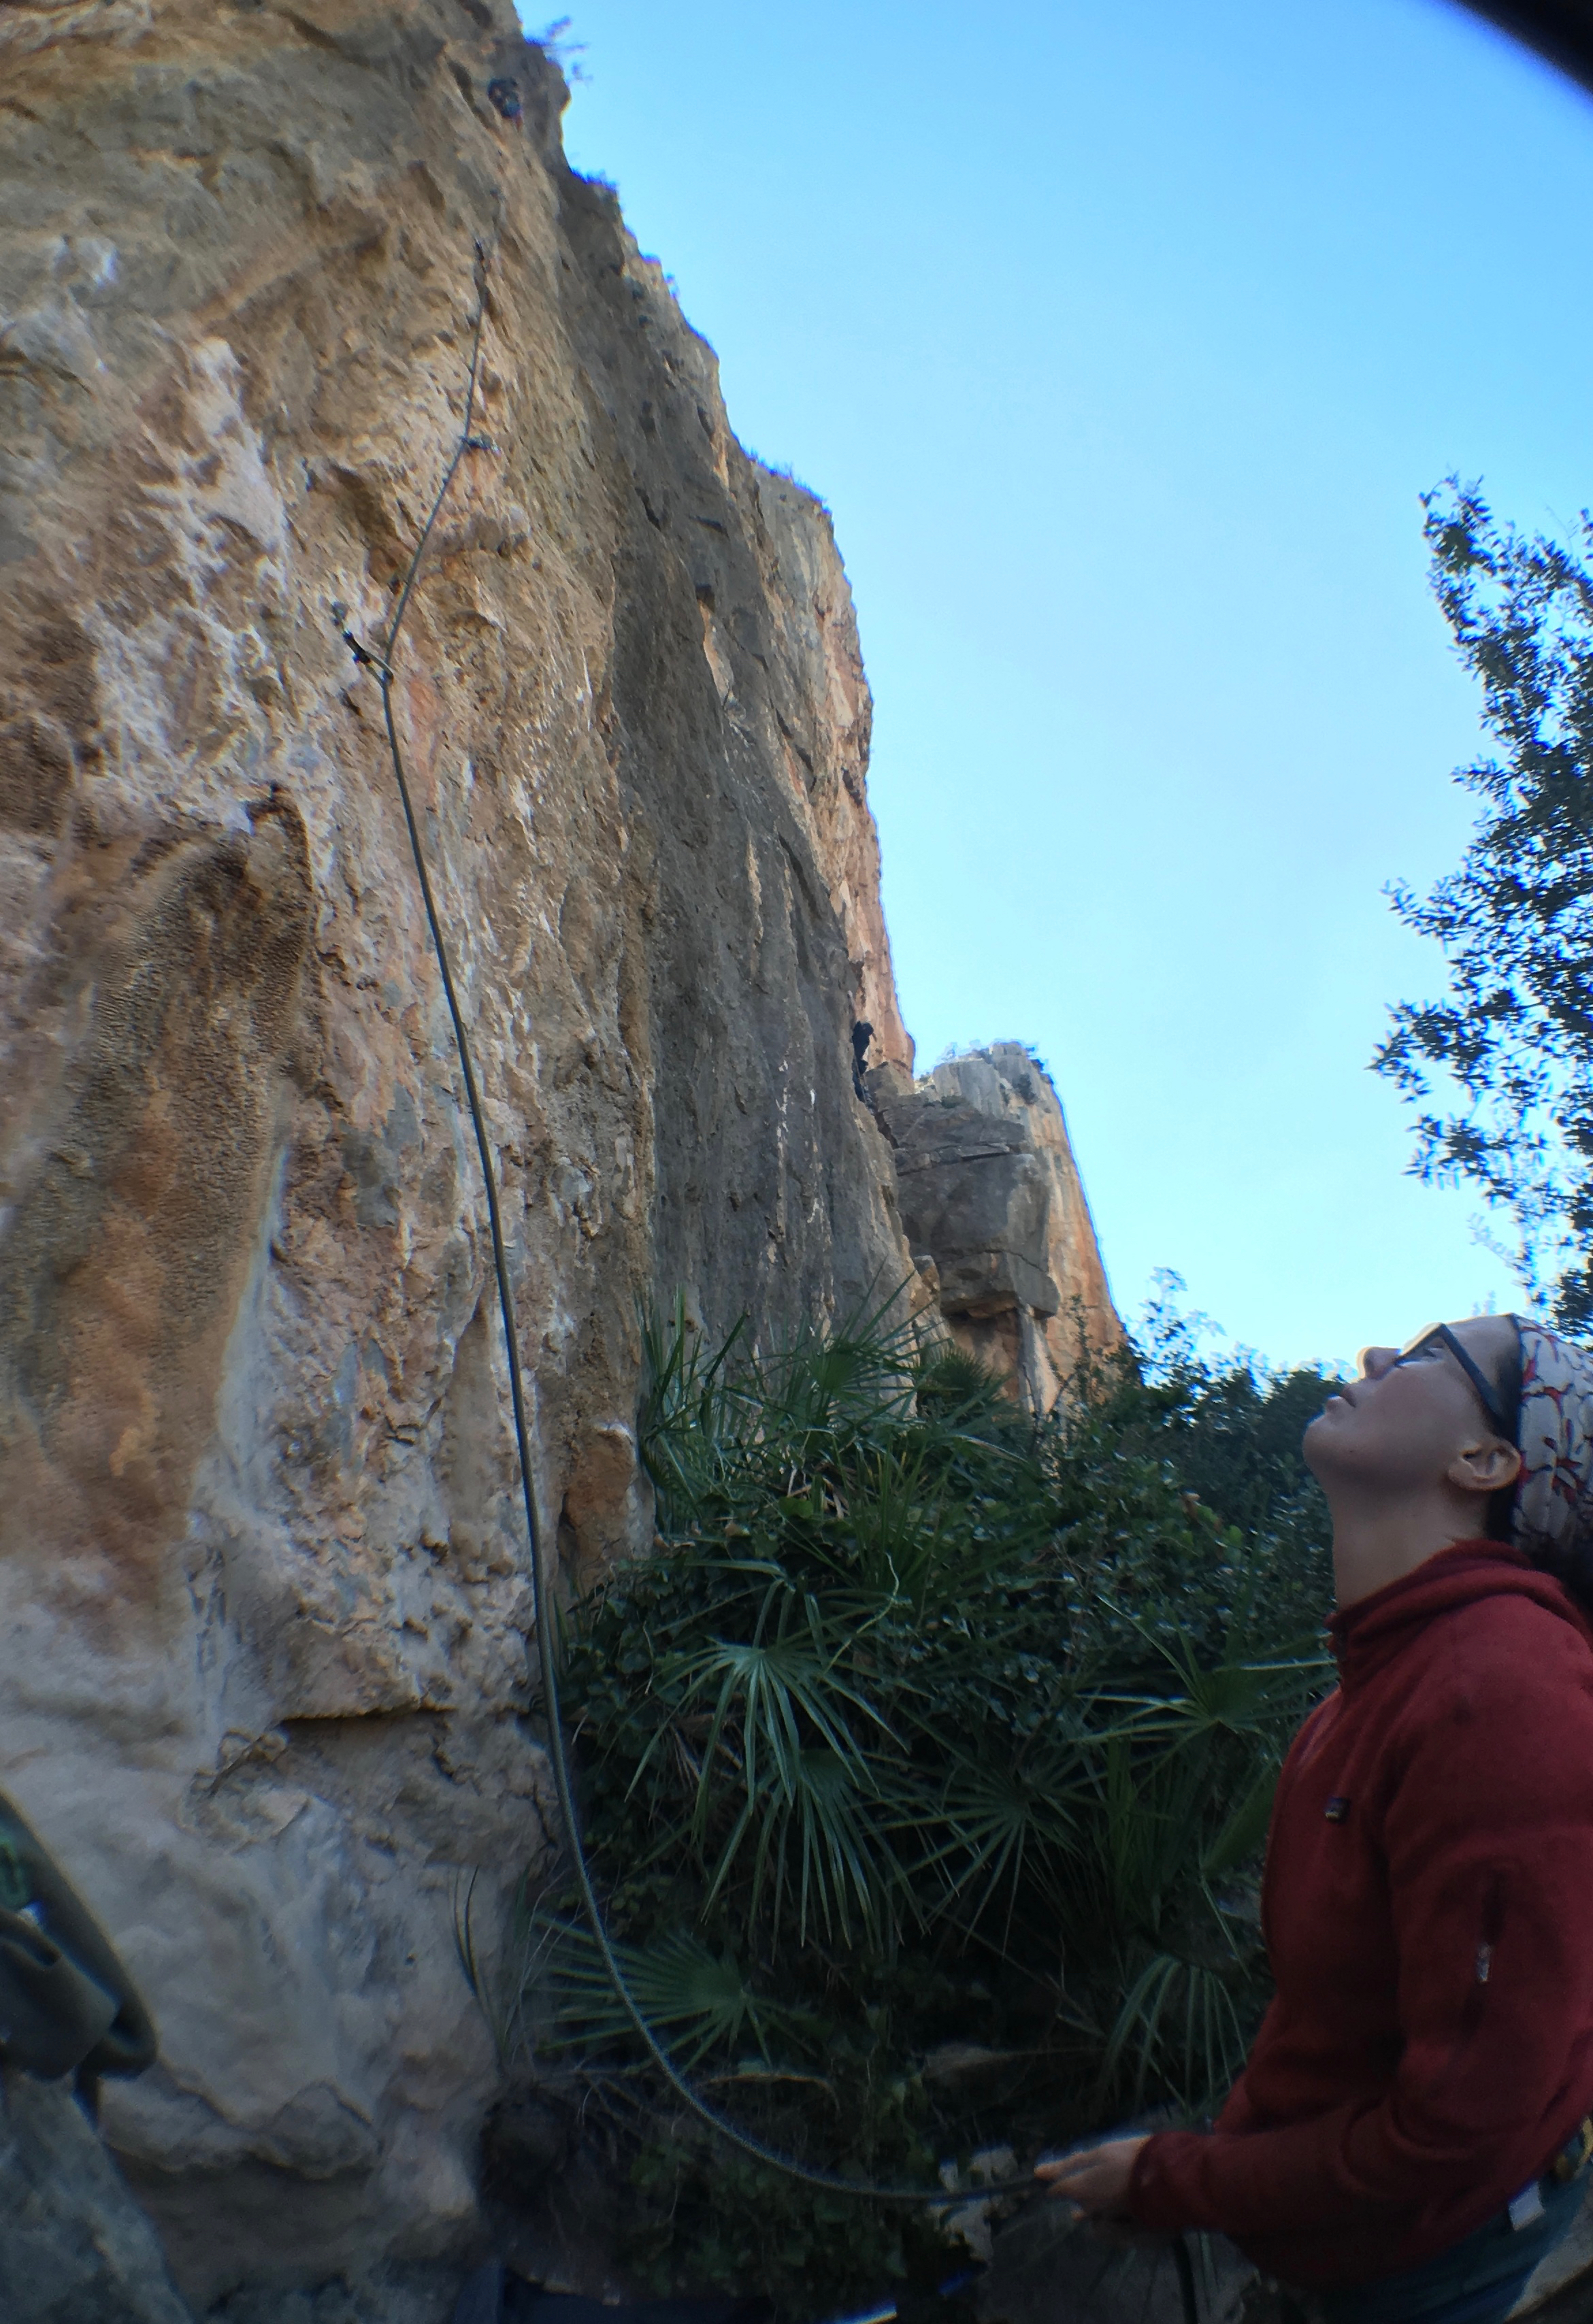 Olloclip again - good range and funky images. Al/Aoife playing on a new 7b